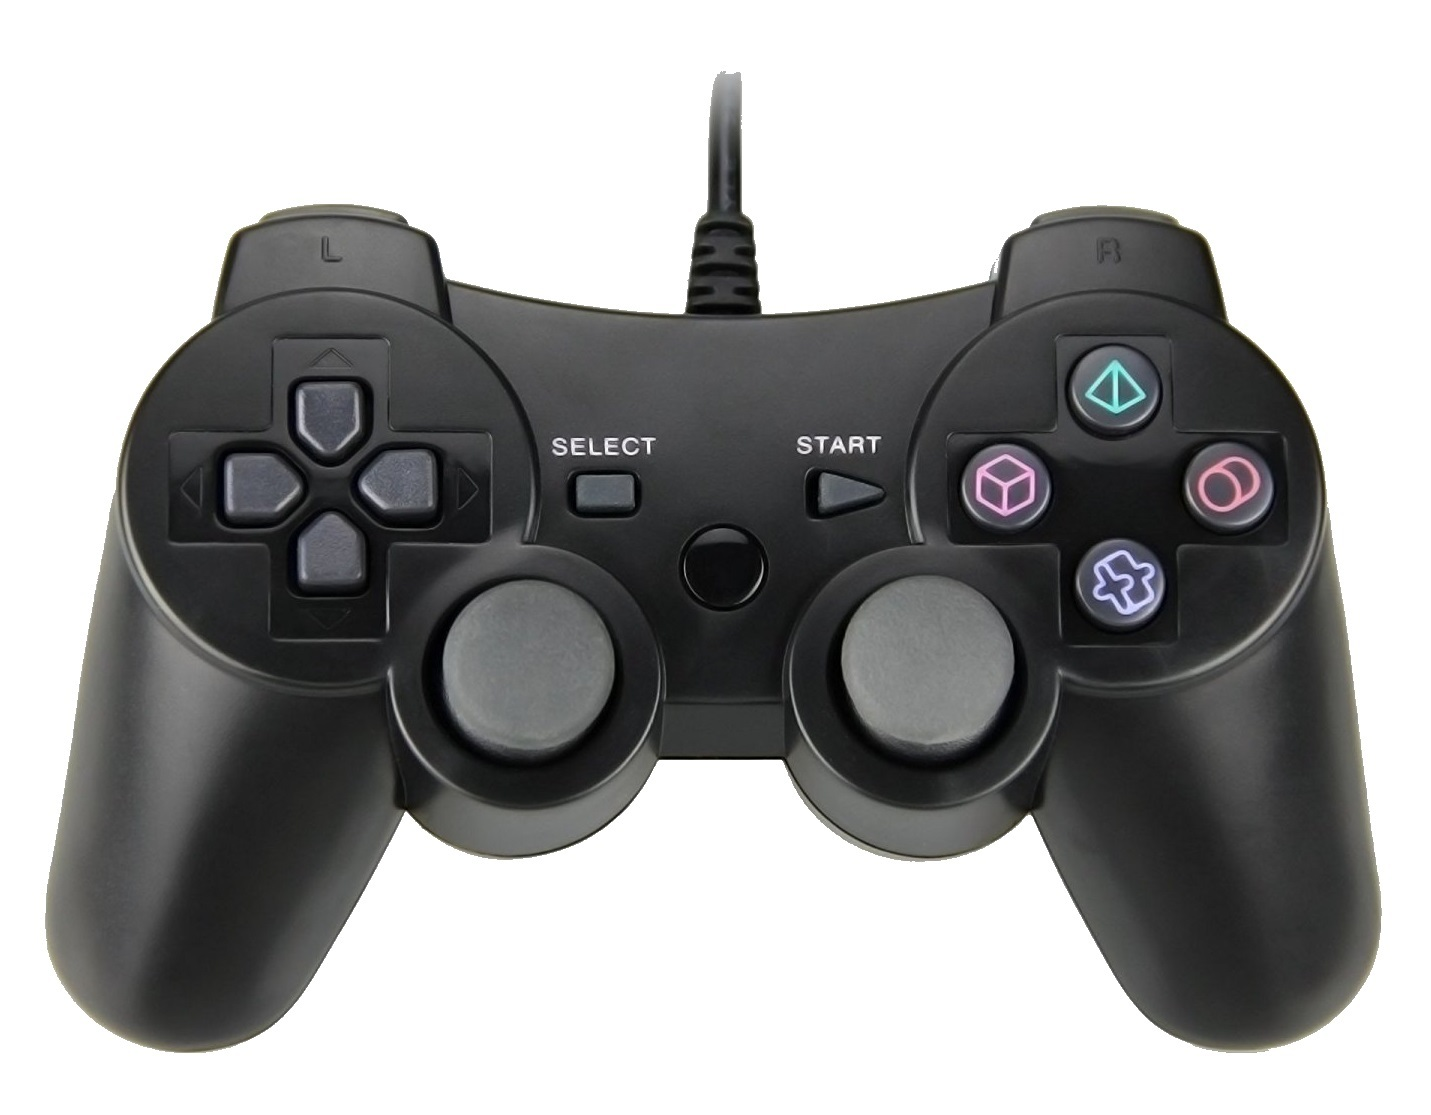 PS3 Wired Controller for PS3 image